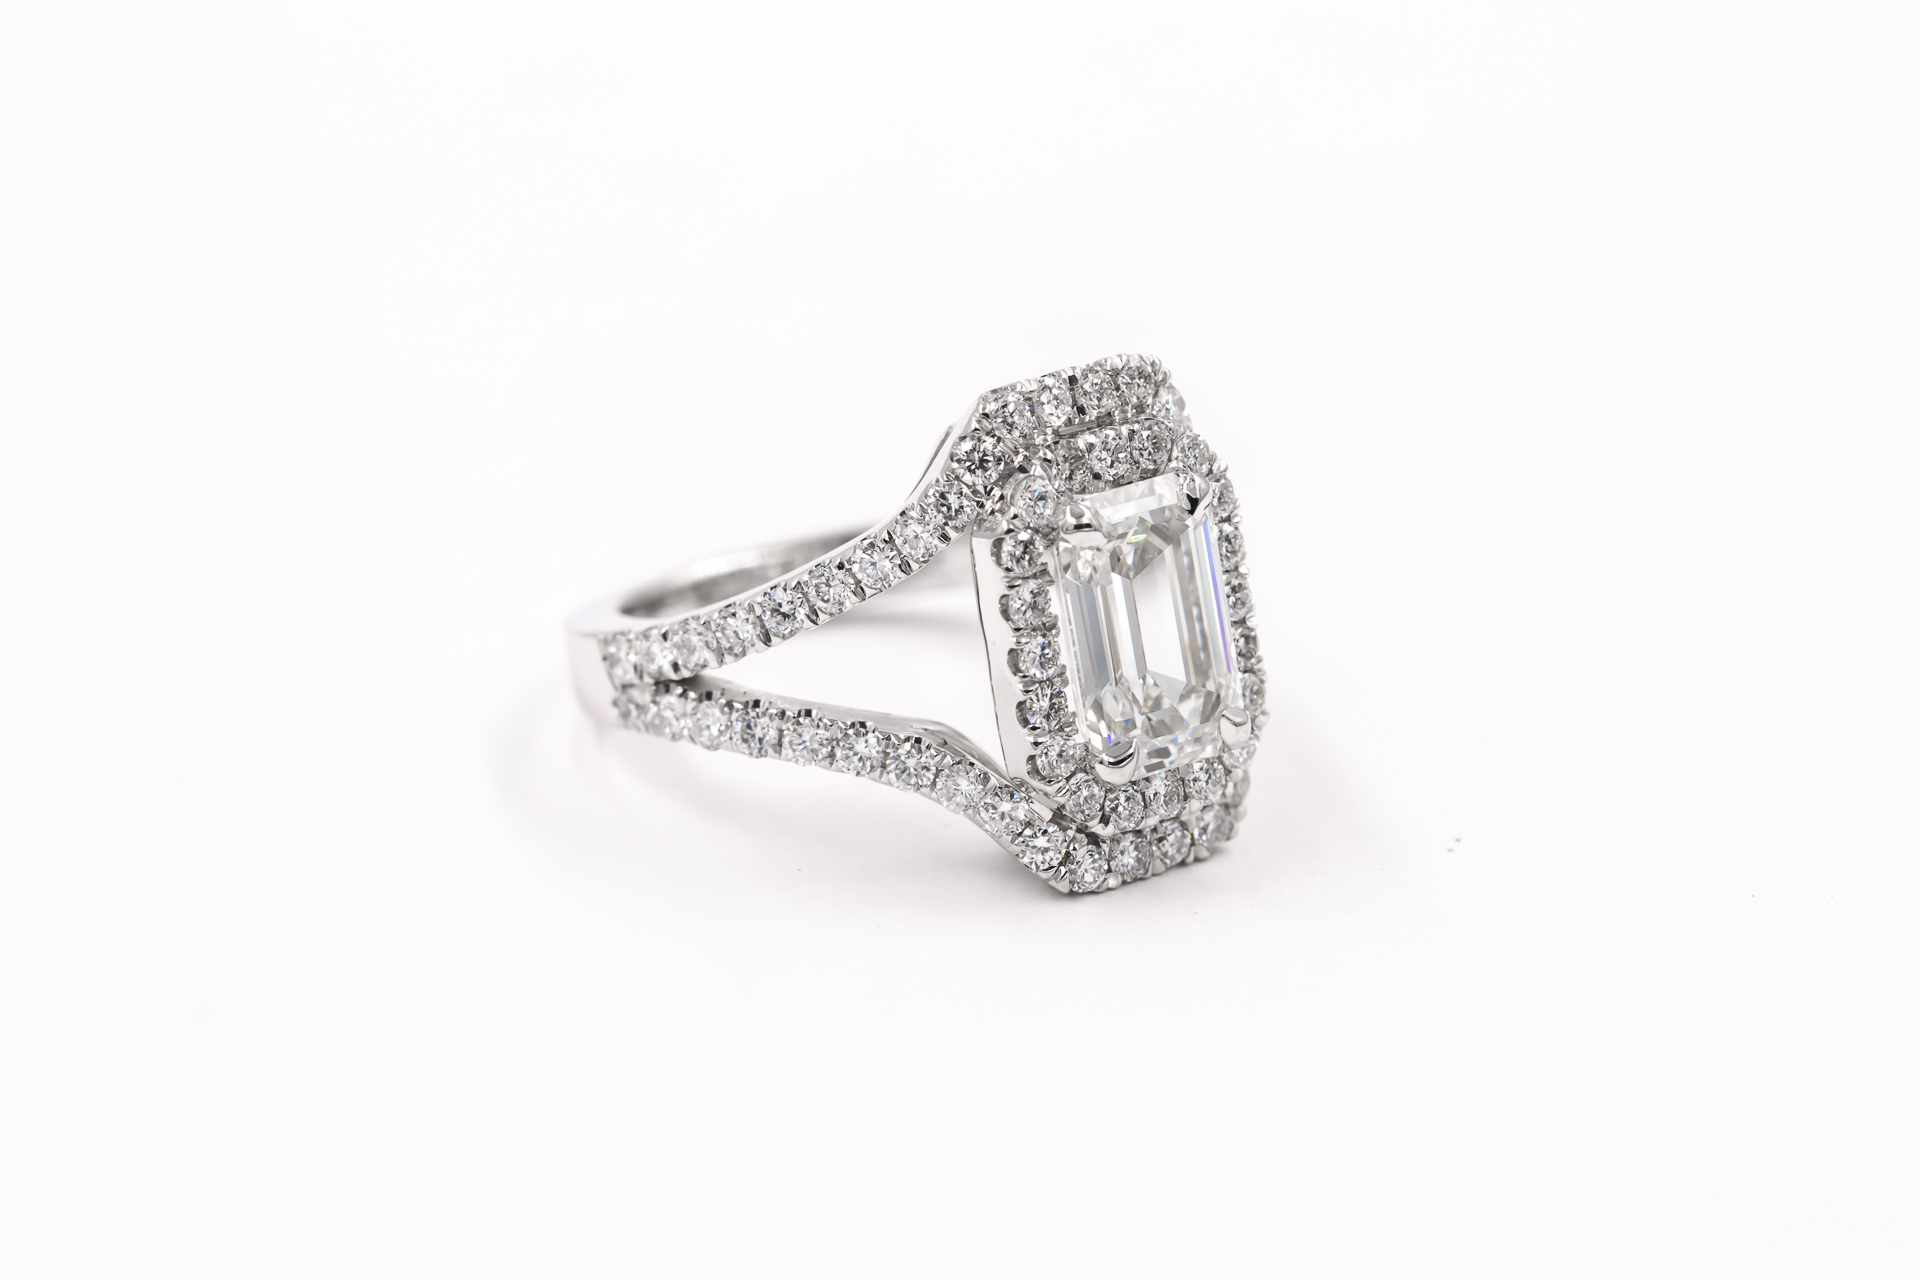 emerald-cut-engagement-ring-4